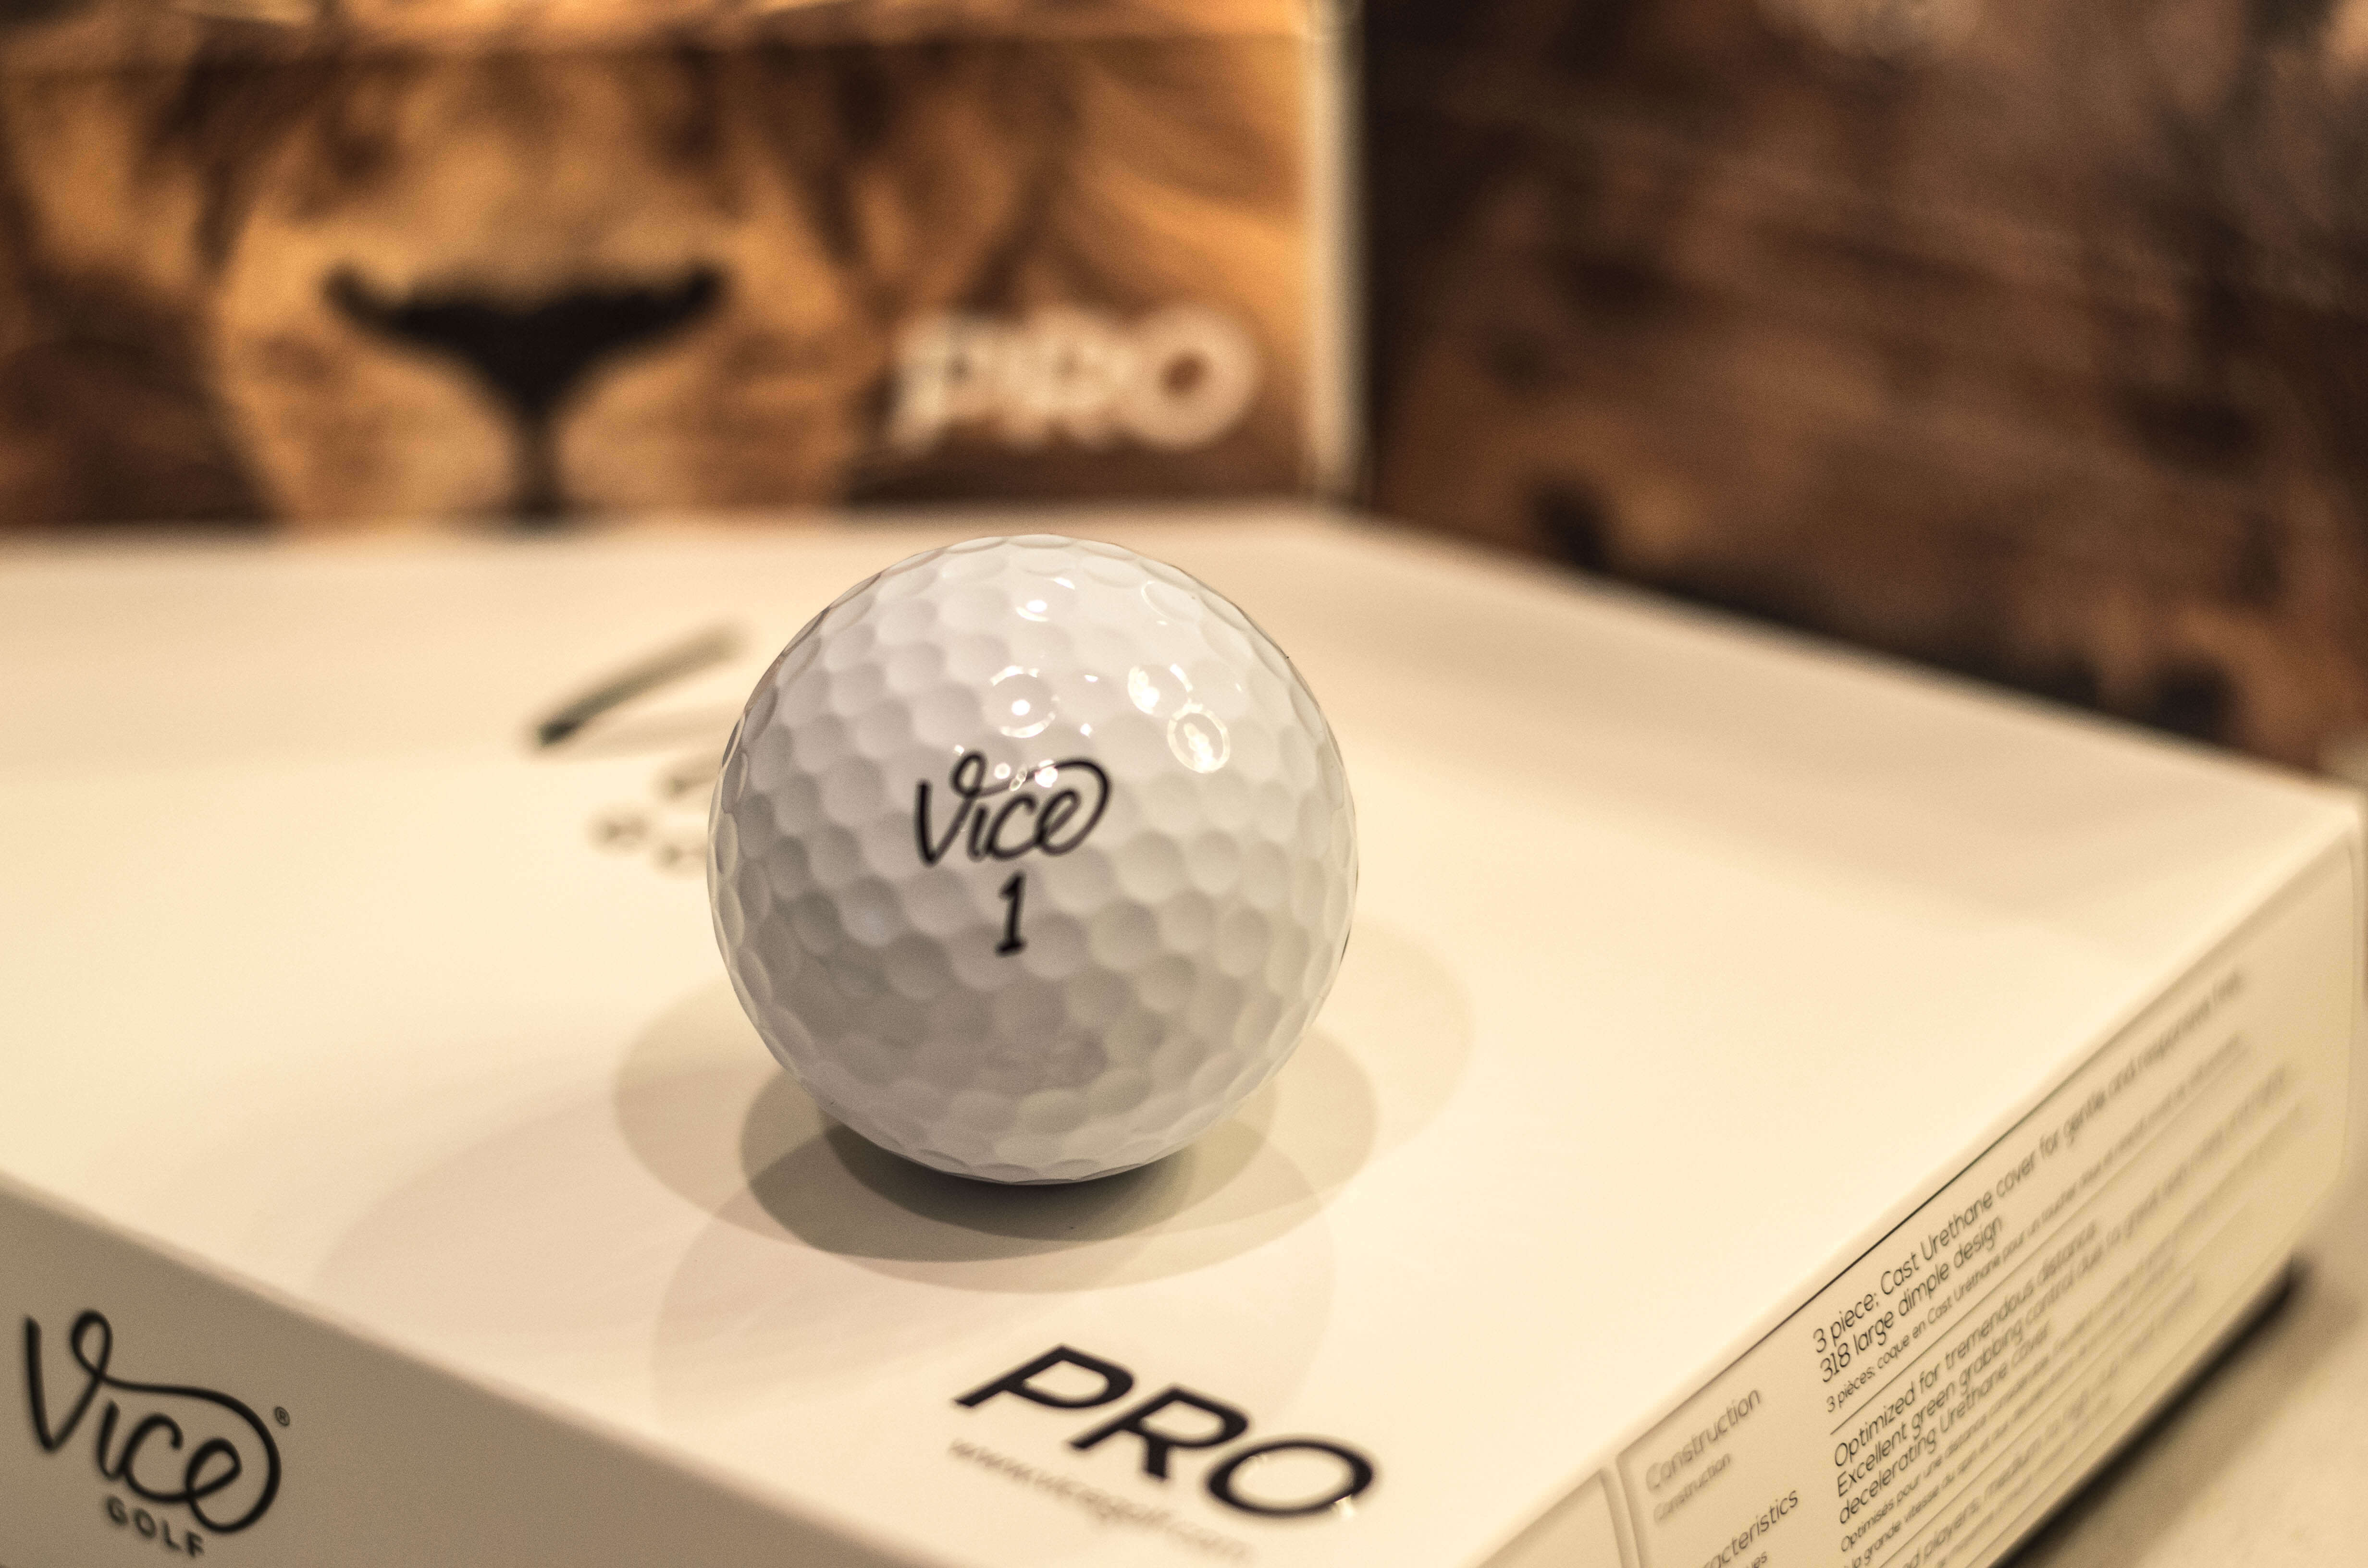 2016-08-09-Vice Golf Balls - Unboxing-300000